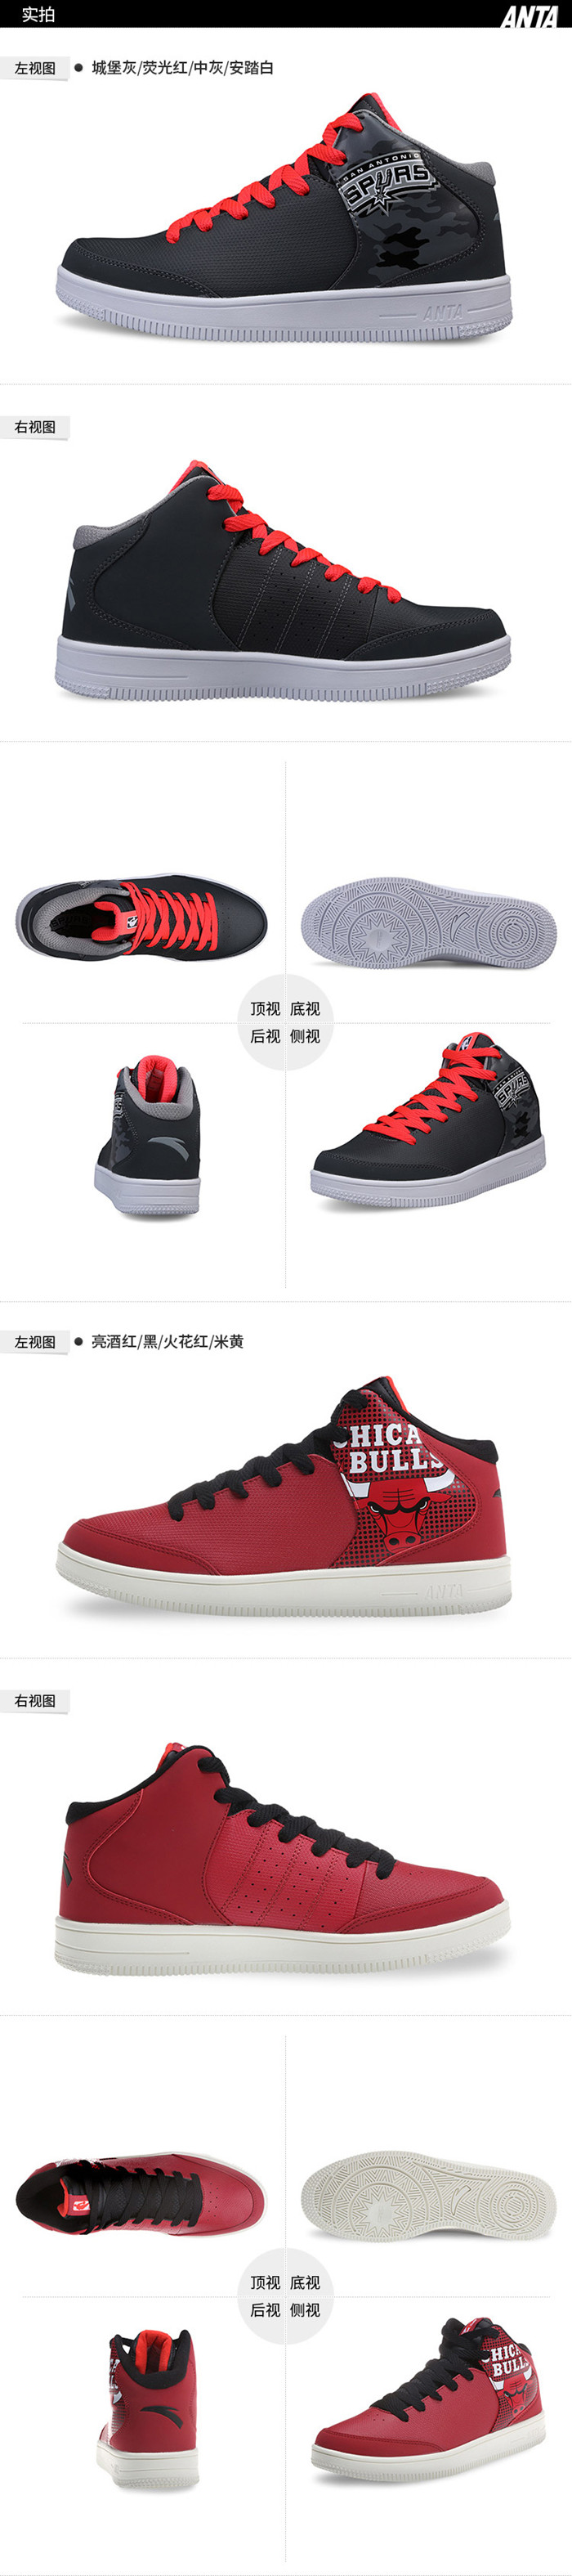 Anta NBA Non-Slip Lifestyle Shoes